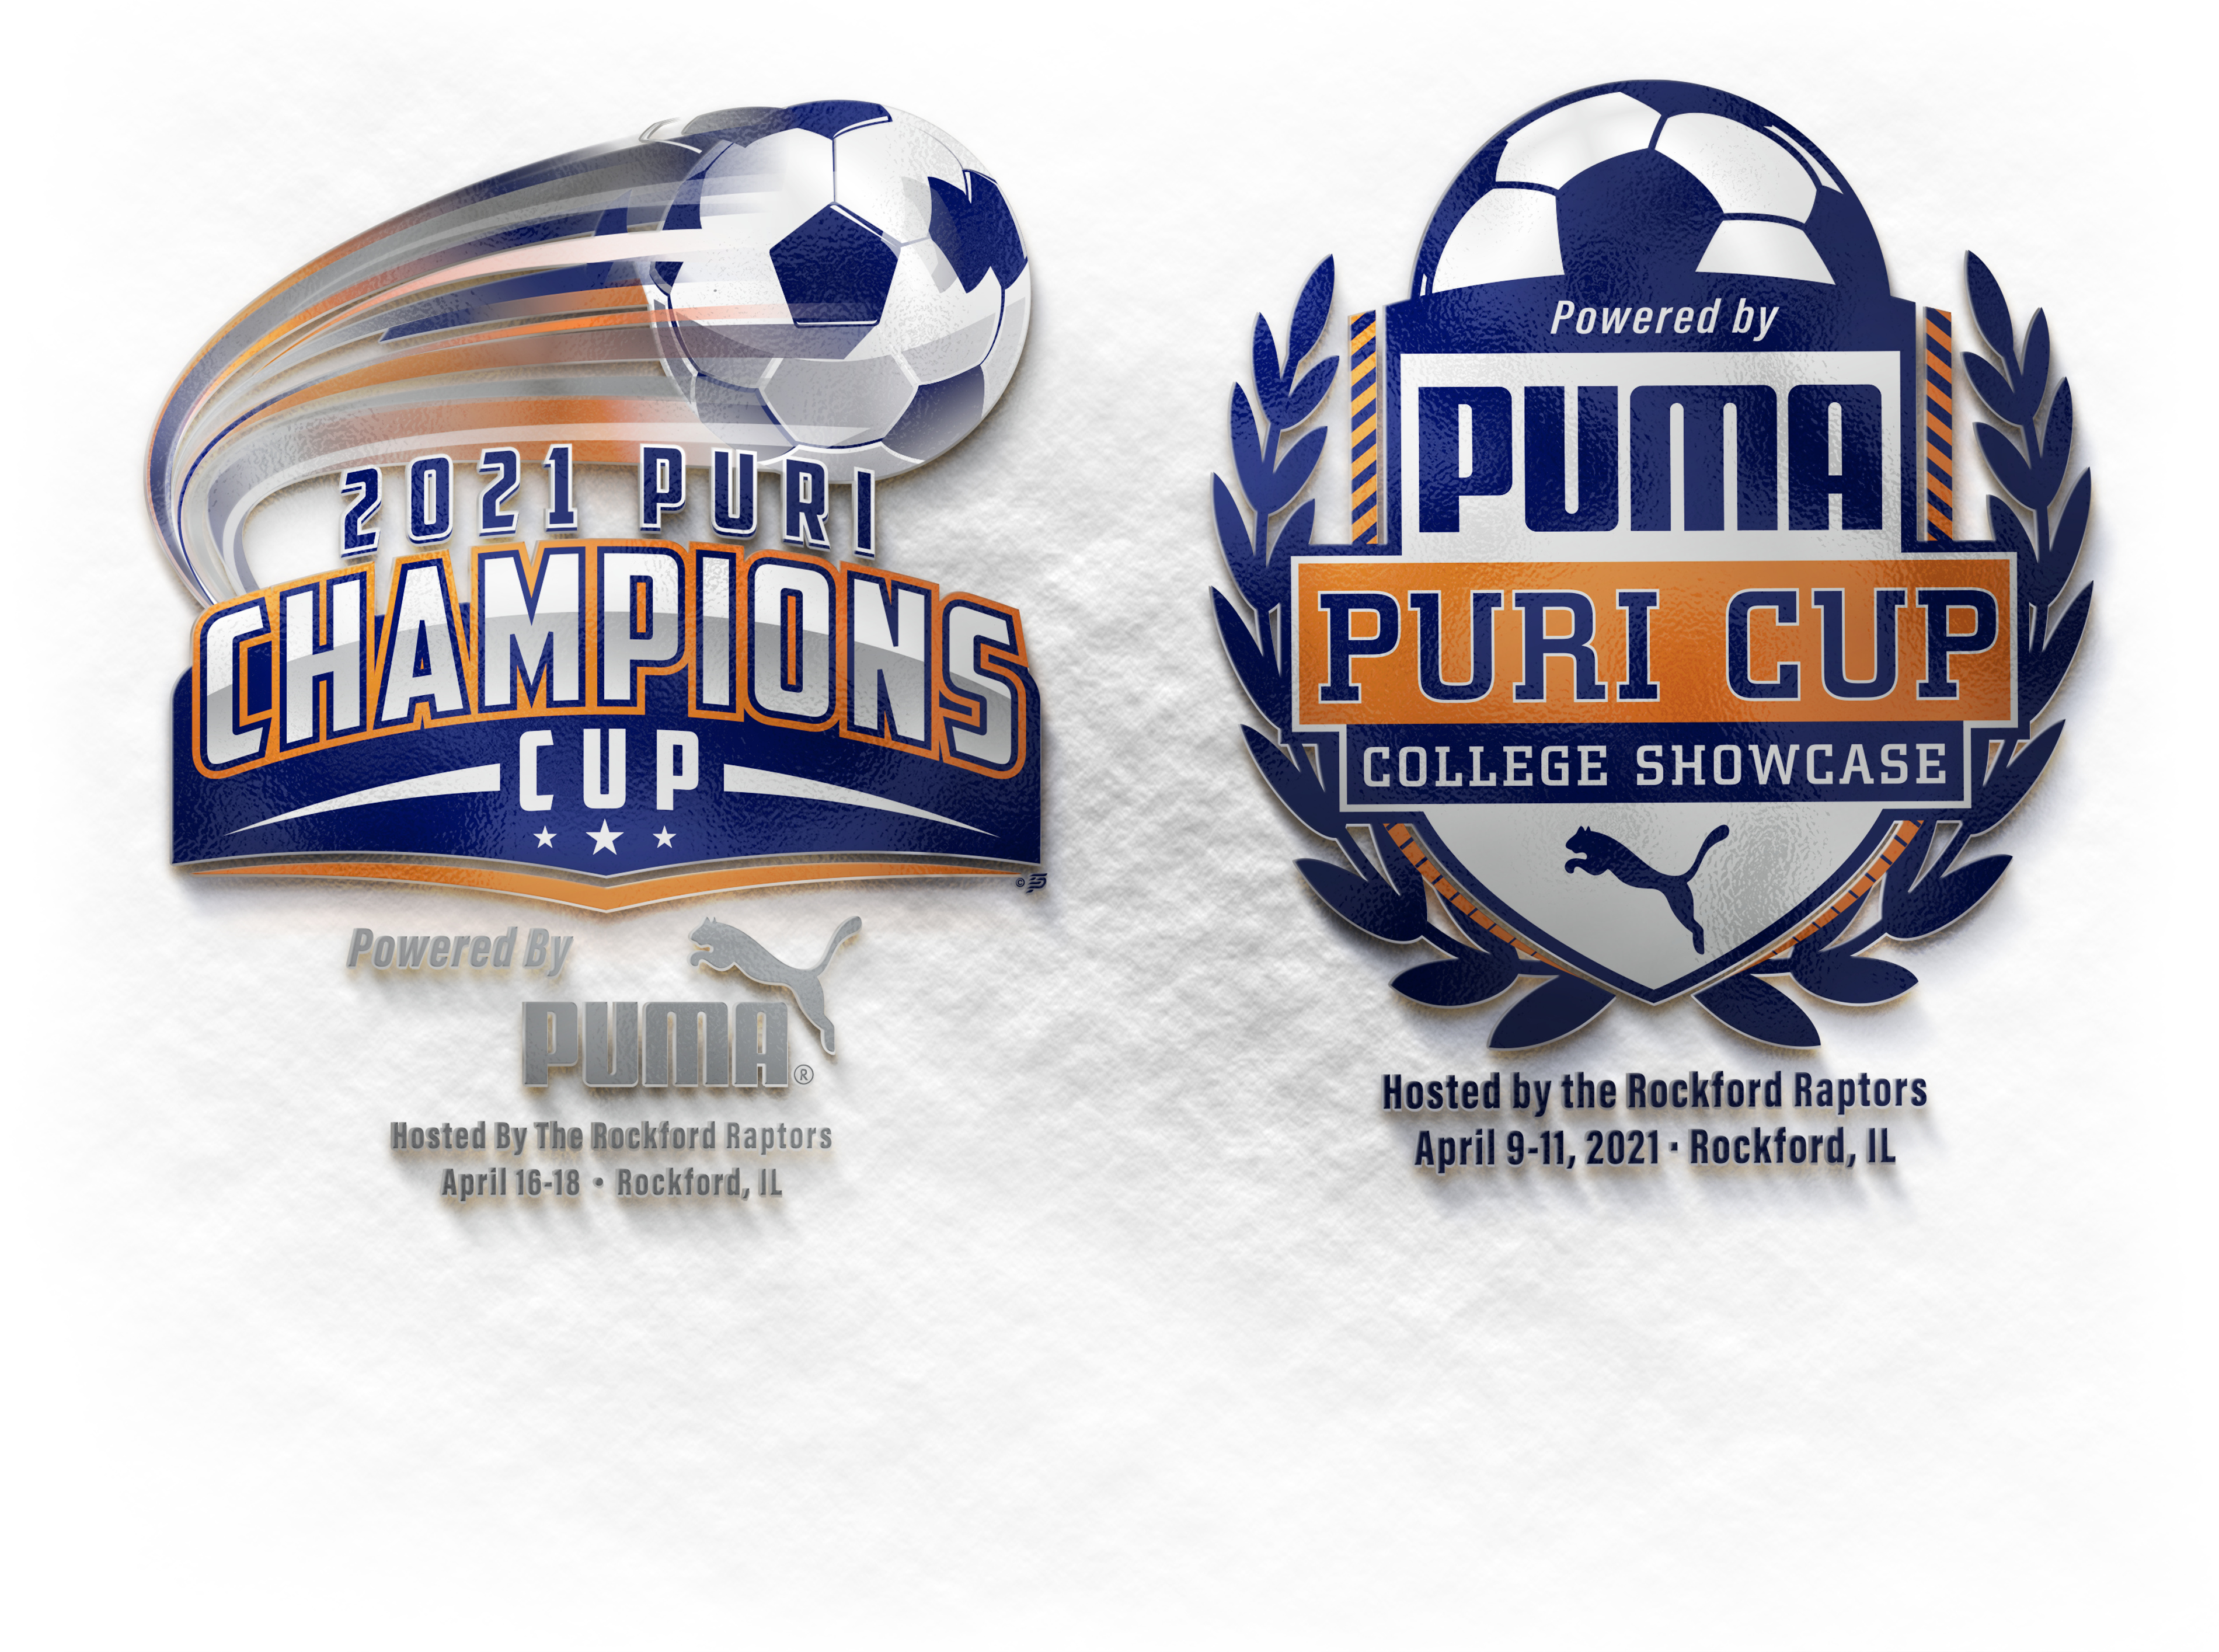 Puri Champions Cup & Puri Cup College Showcase Powered by Puma